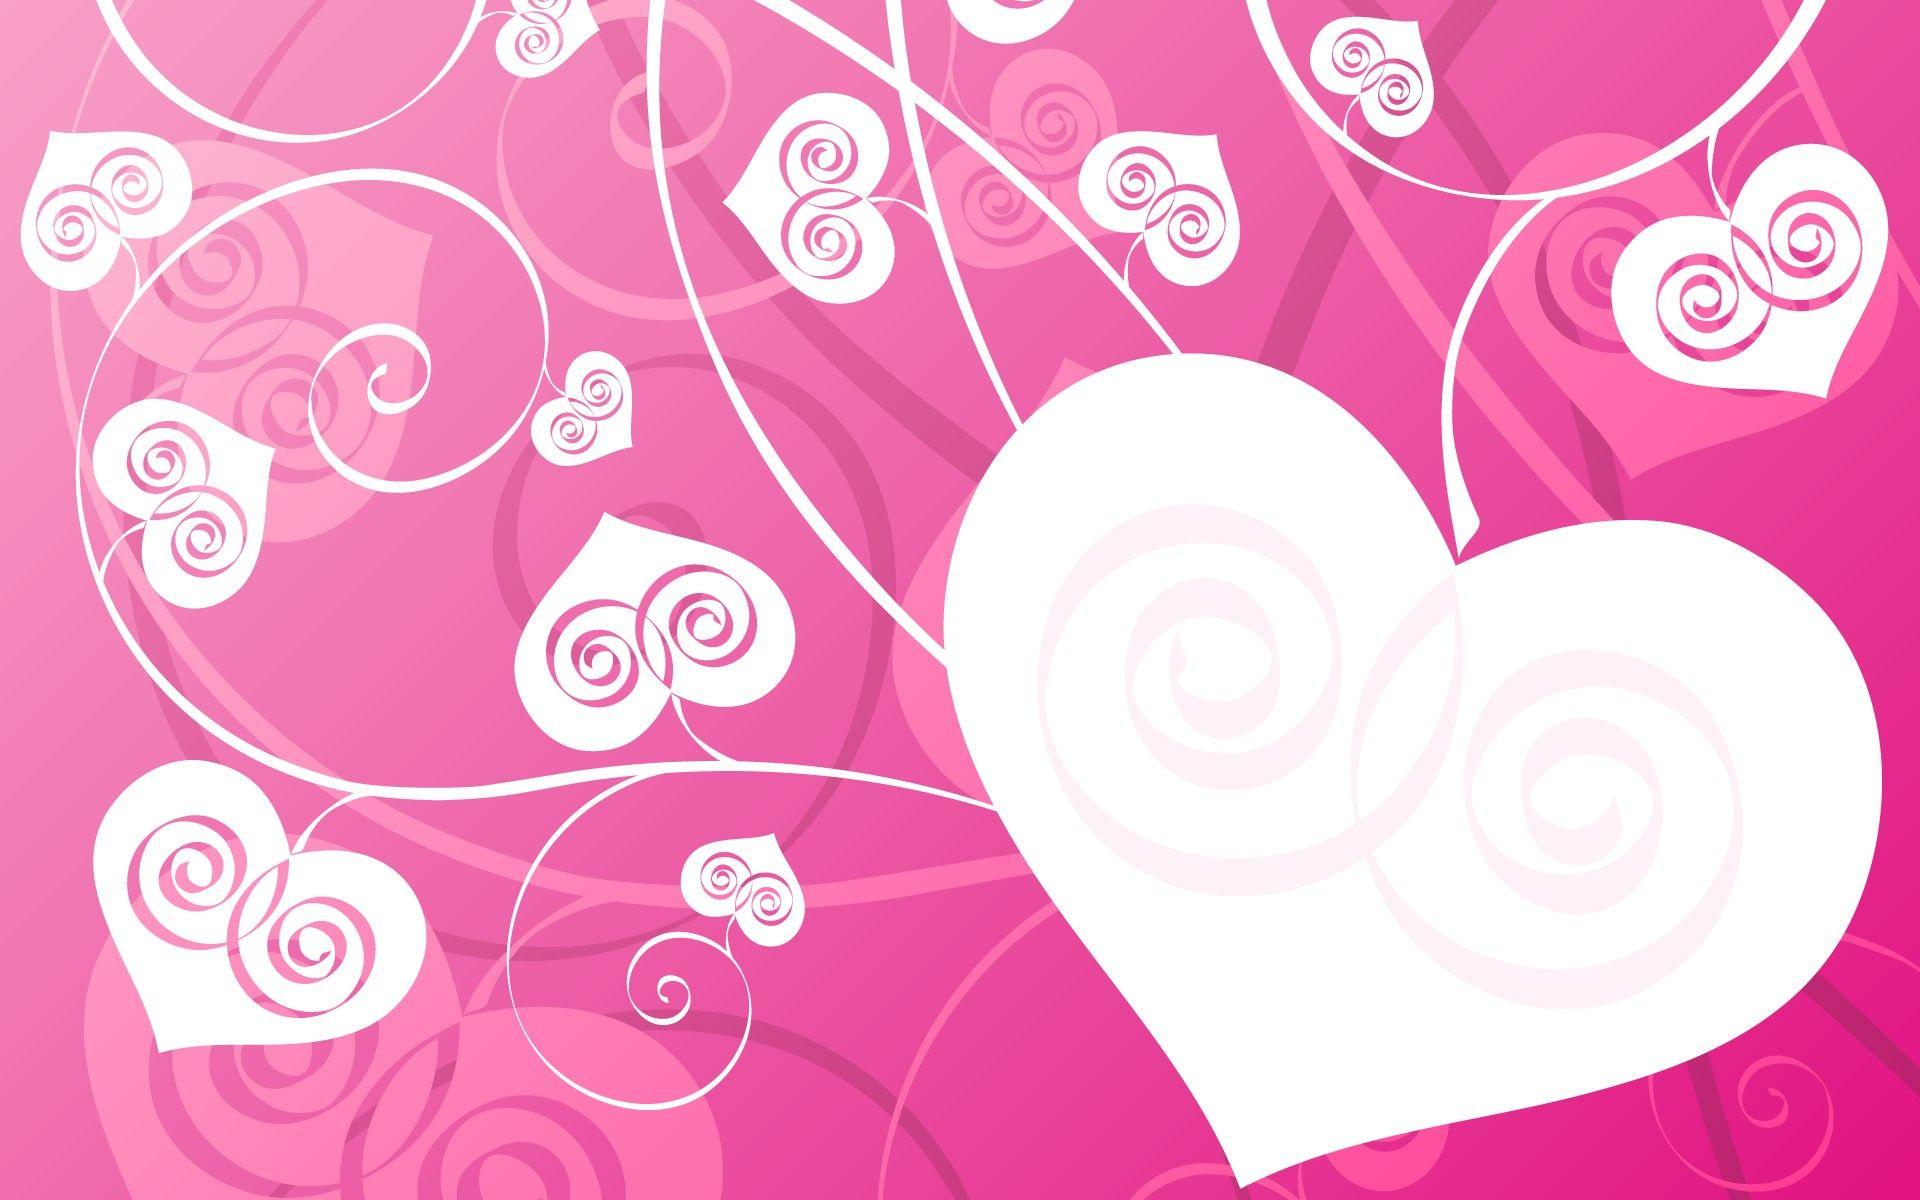 Love Pink Wallpaper Backgrounds : Pink Love Heart Backgrounds - Wallpaper cave